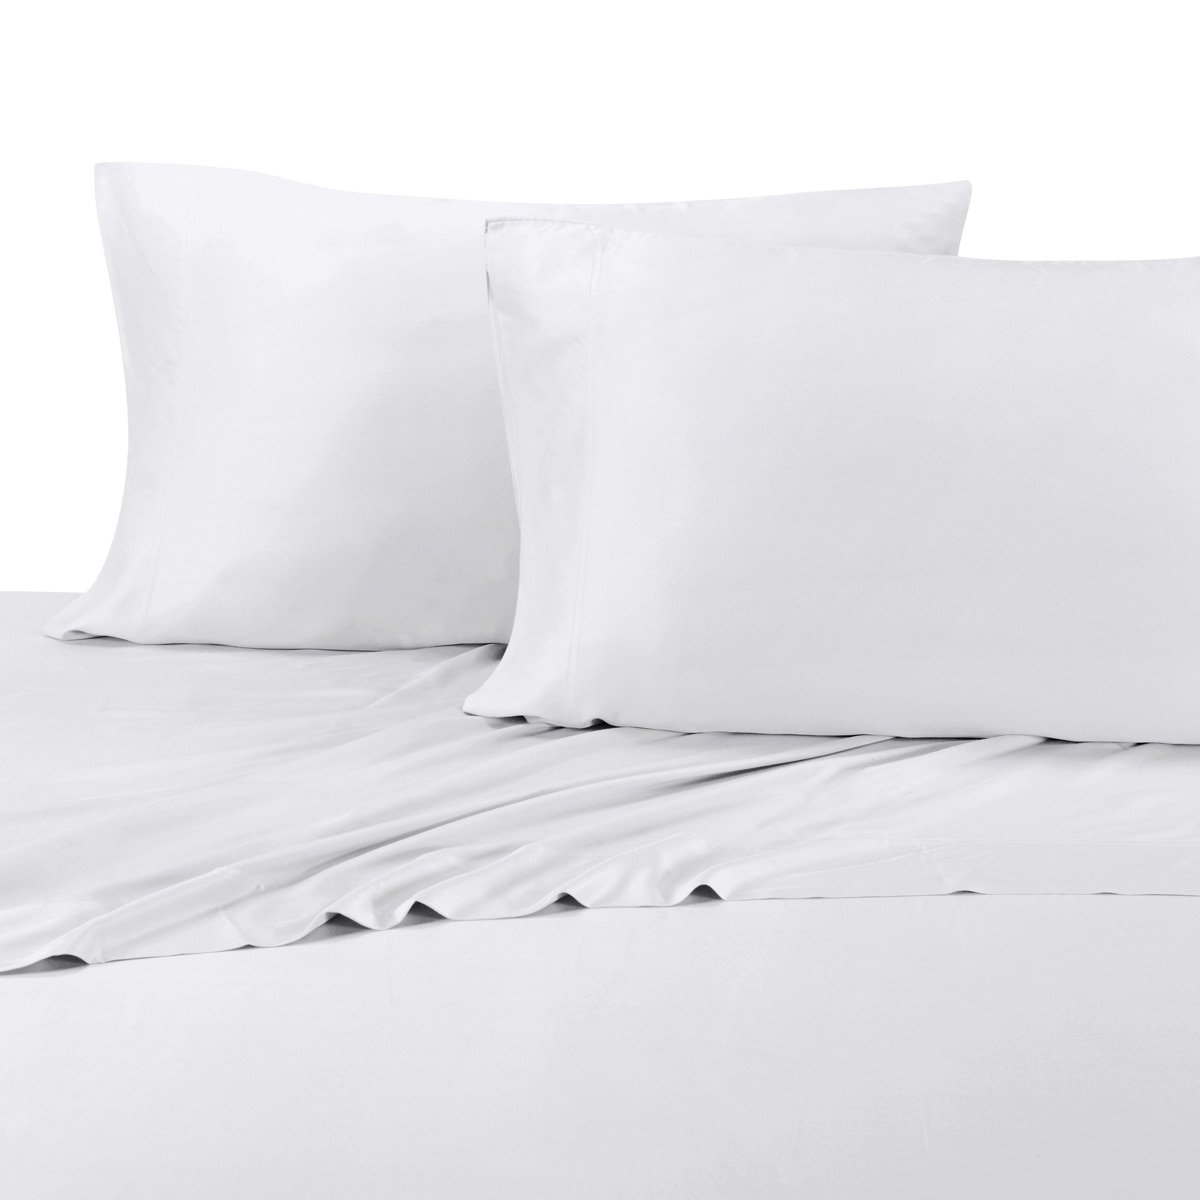 100% Bamboo Bed Sheet Set - Twin Extra Long (XL), Solid White - Super Soft & Cool, Bamboo Viscose, 3PC Sheets